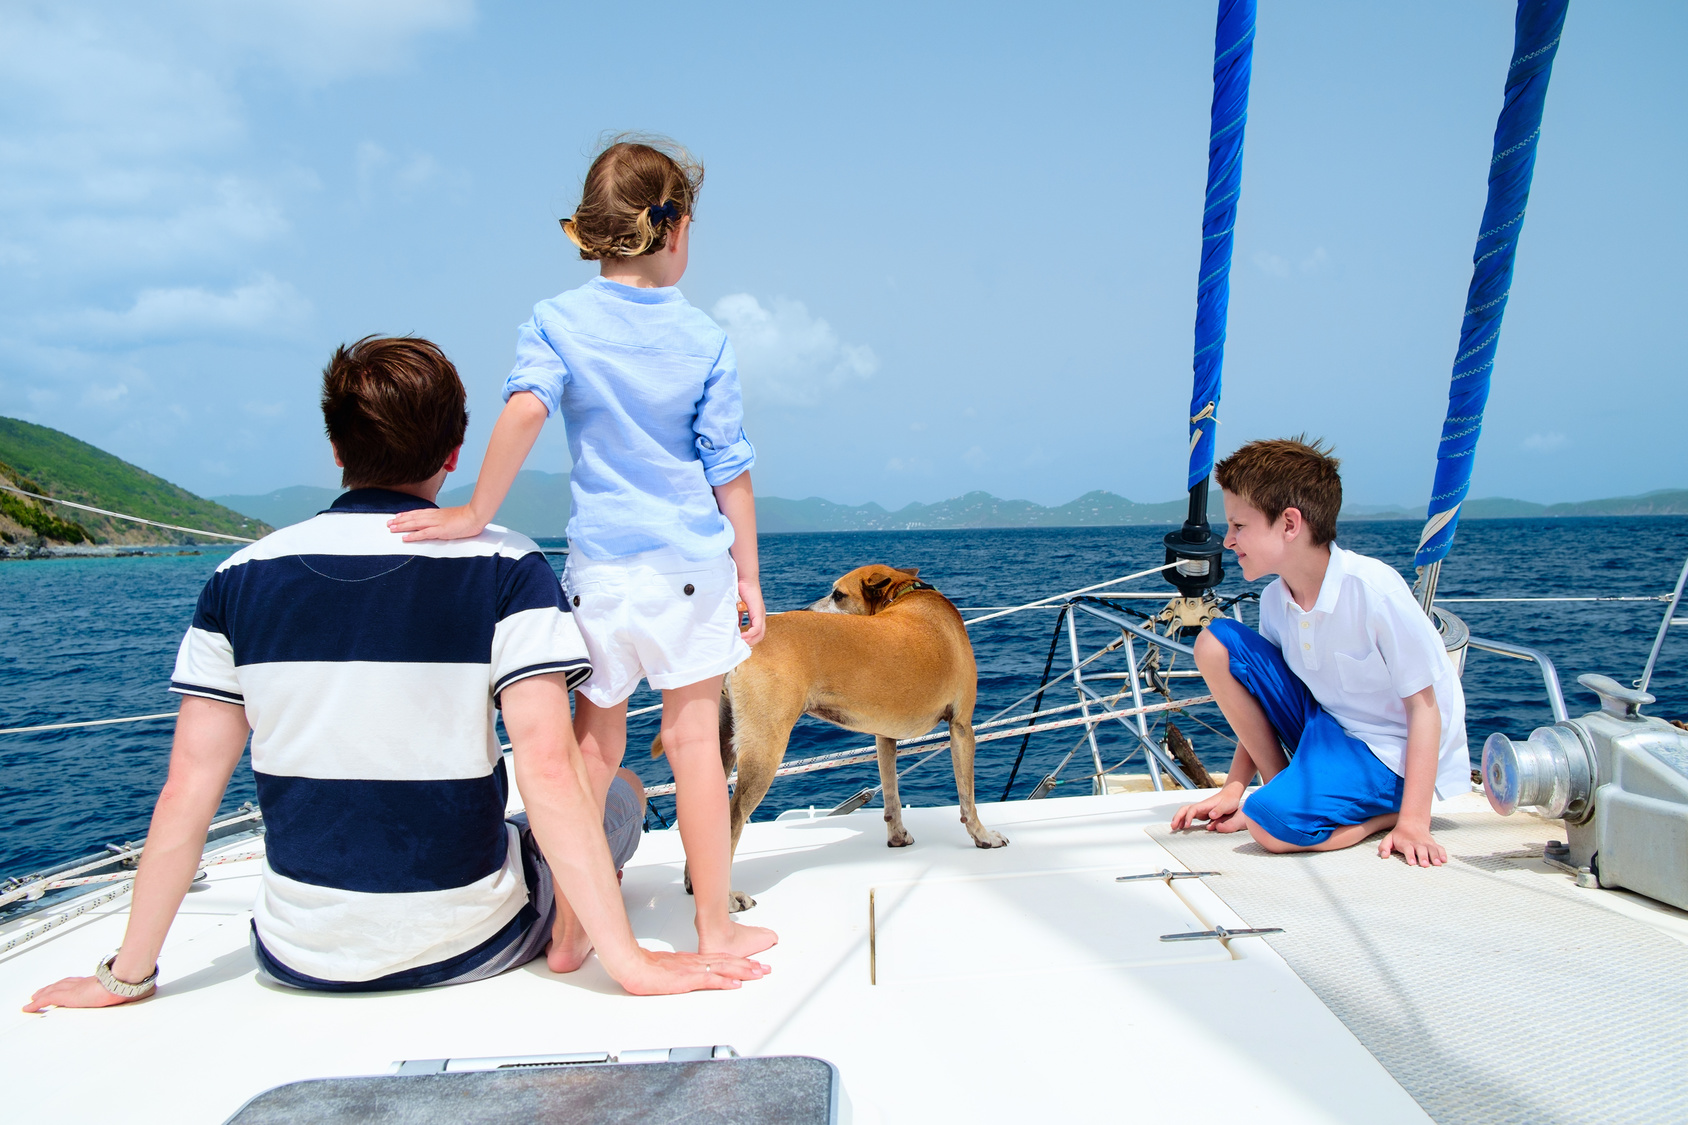 Sailing with children